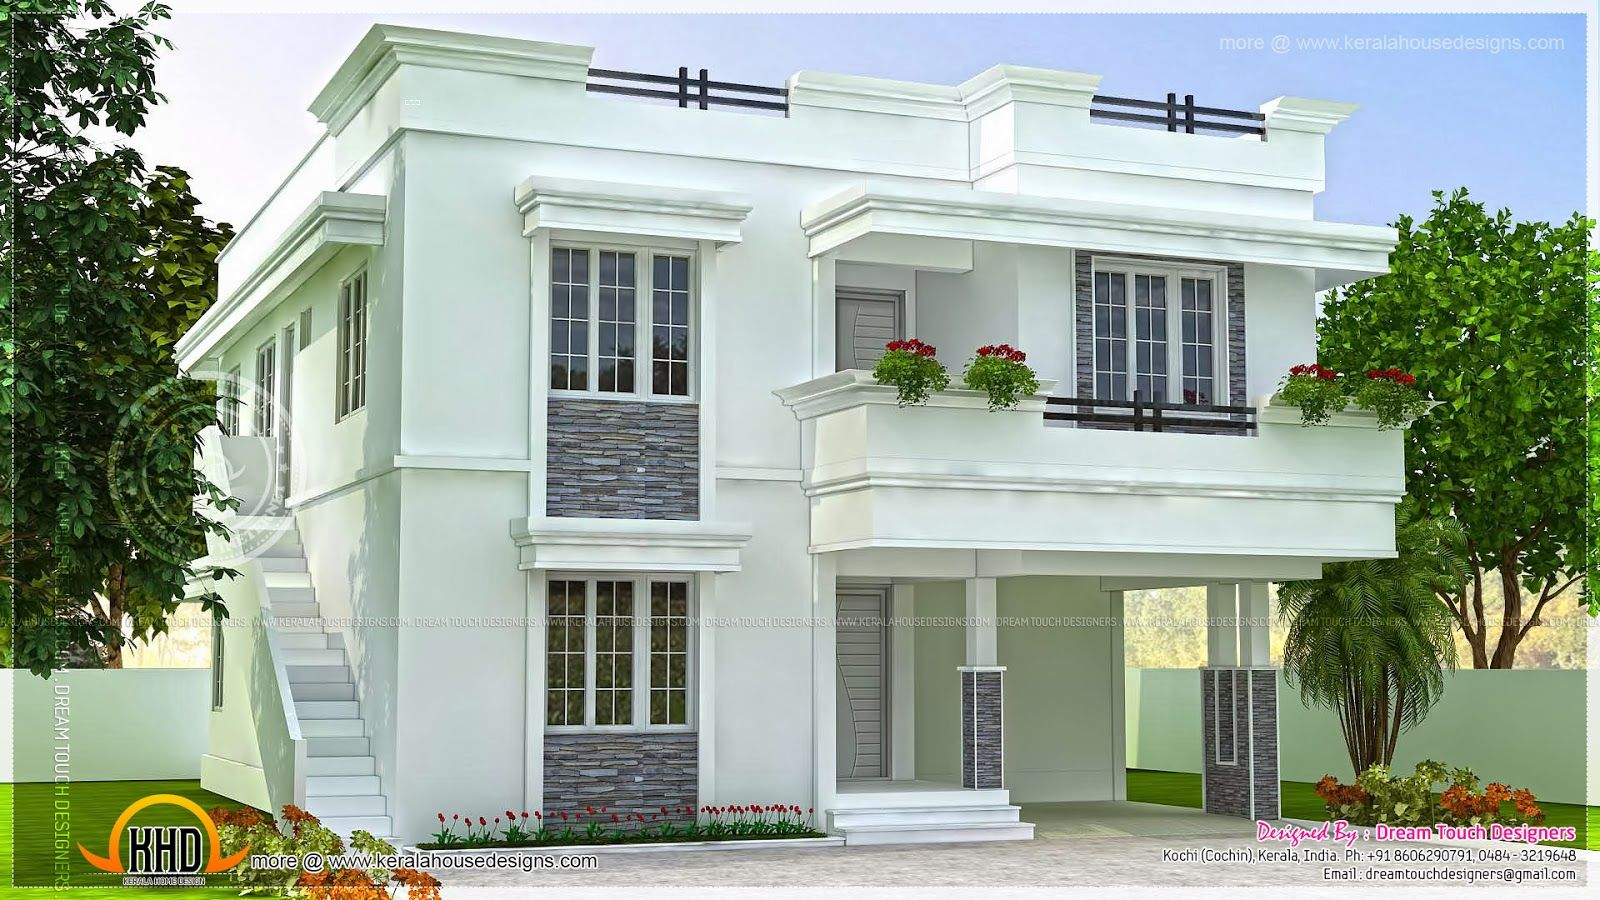 Modern Beautiful Home Modern Beautiful Home Design Indian: good house designs in india